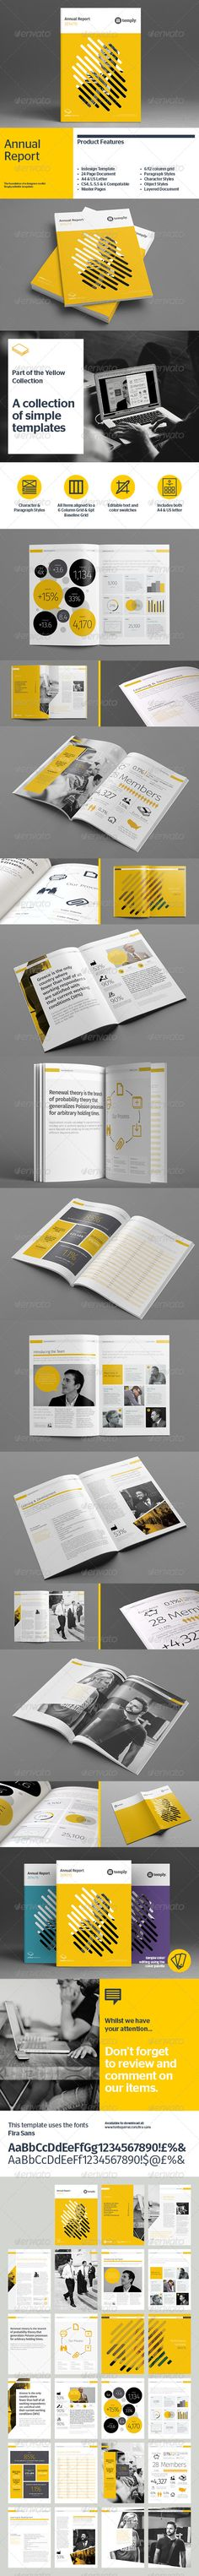 Annual Report Template - Corporate Brochures. DOWNLOAD : http://graphicriver.net/item/annual-report-template/8536189?ref=sinzo